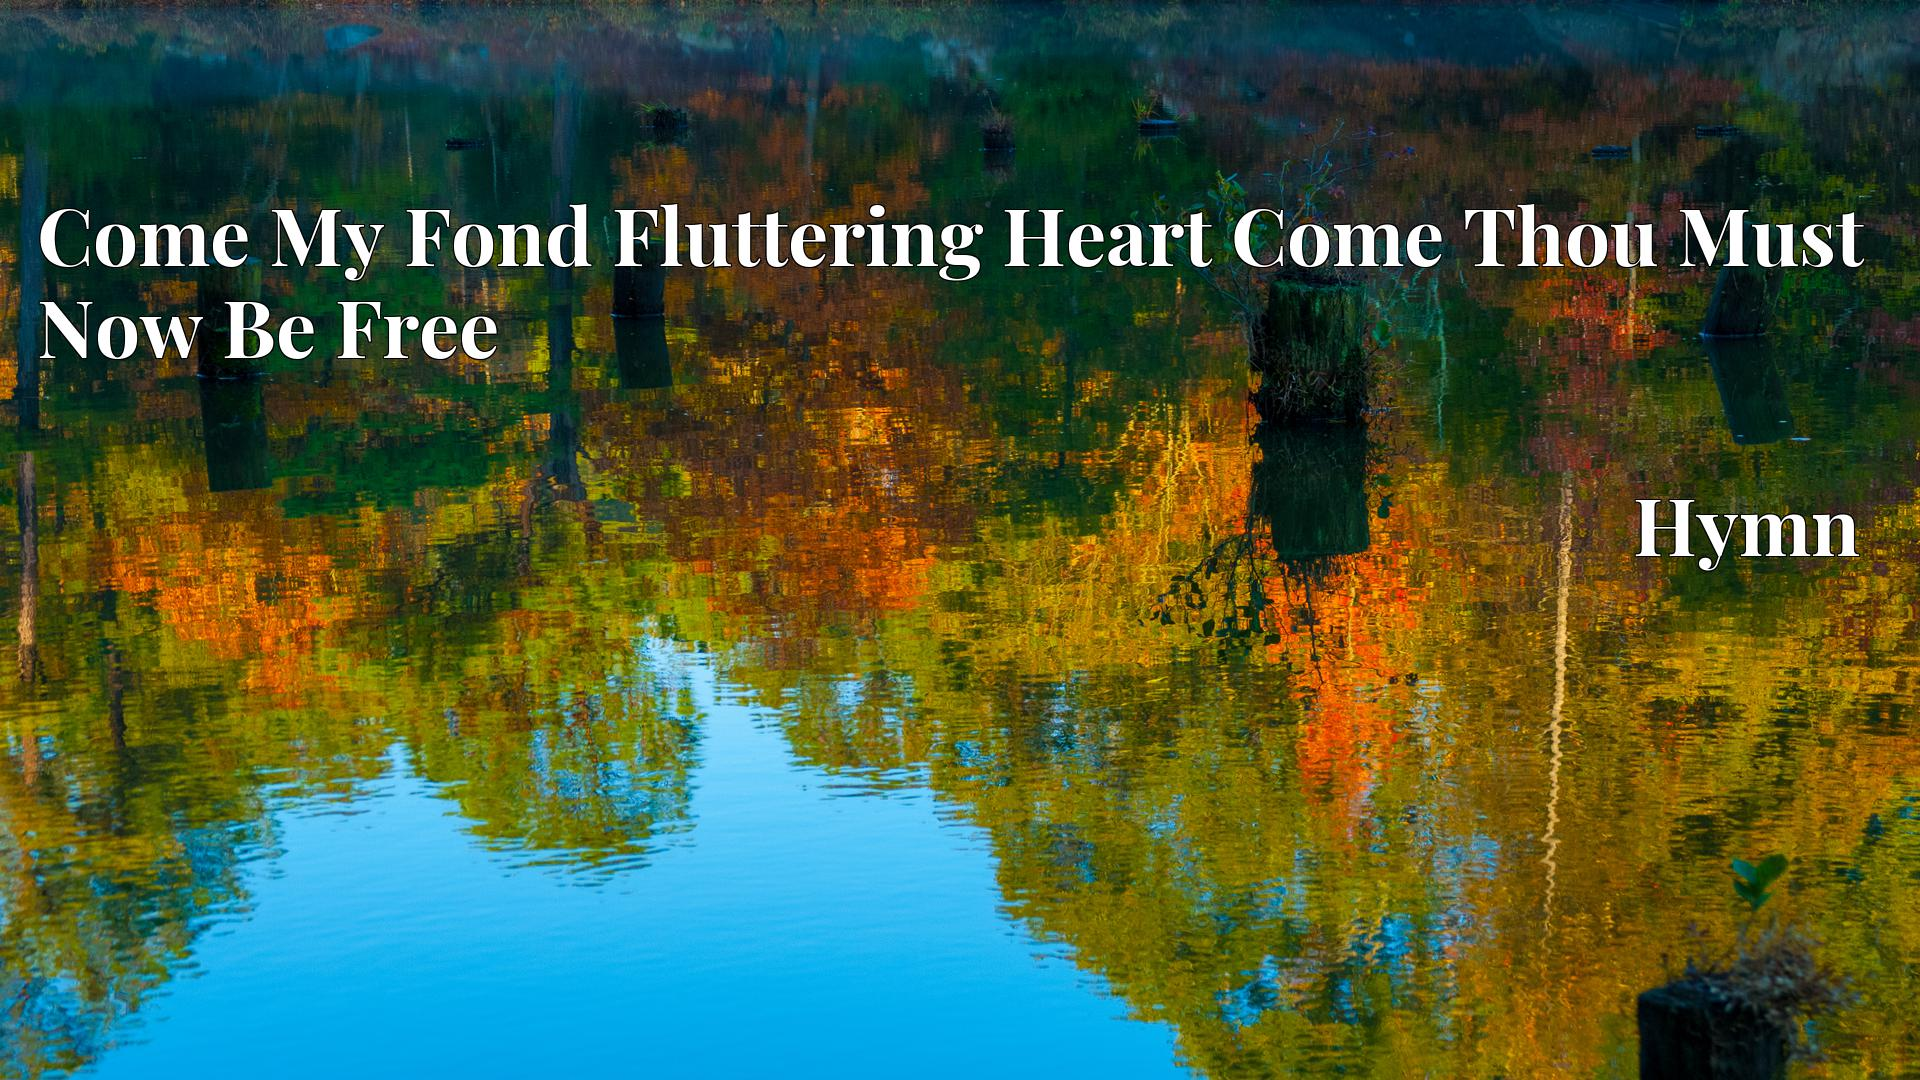 Come My Fond Fluttering Heart Come Thou Must Now Be Free - Hymn